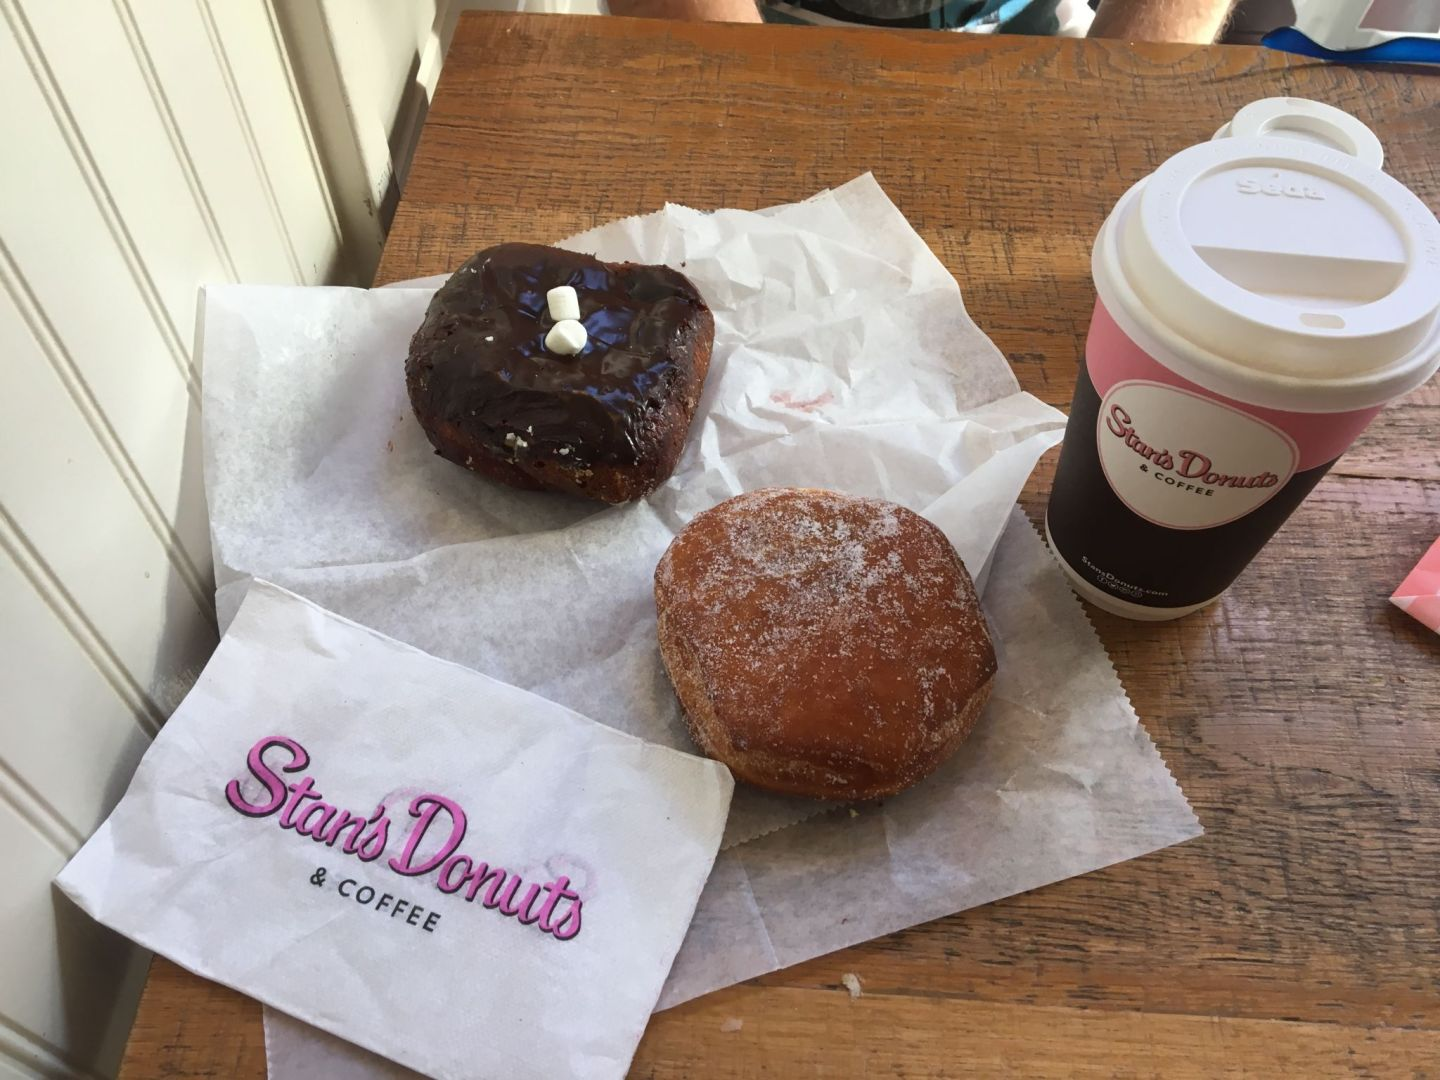 Chicago hotspot: Stan's Donuts & Coffee